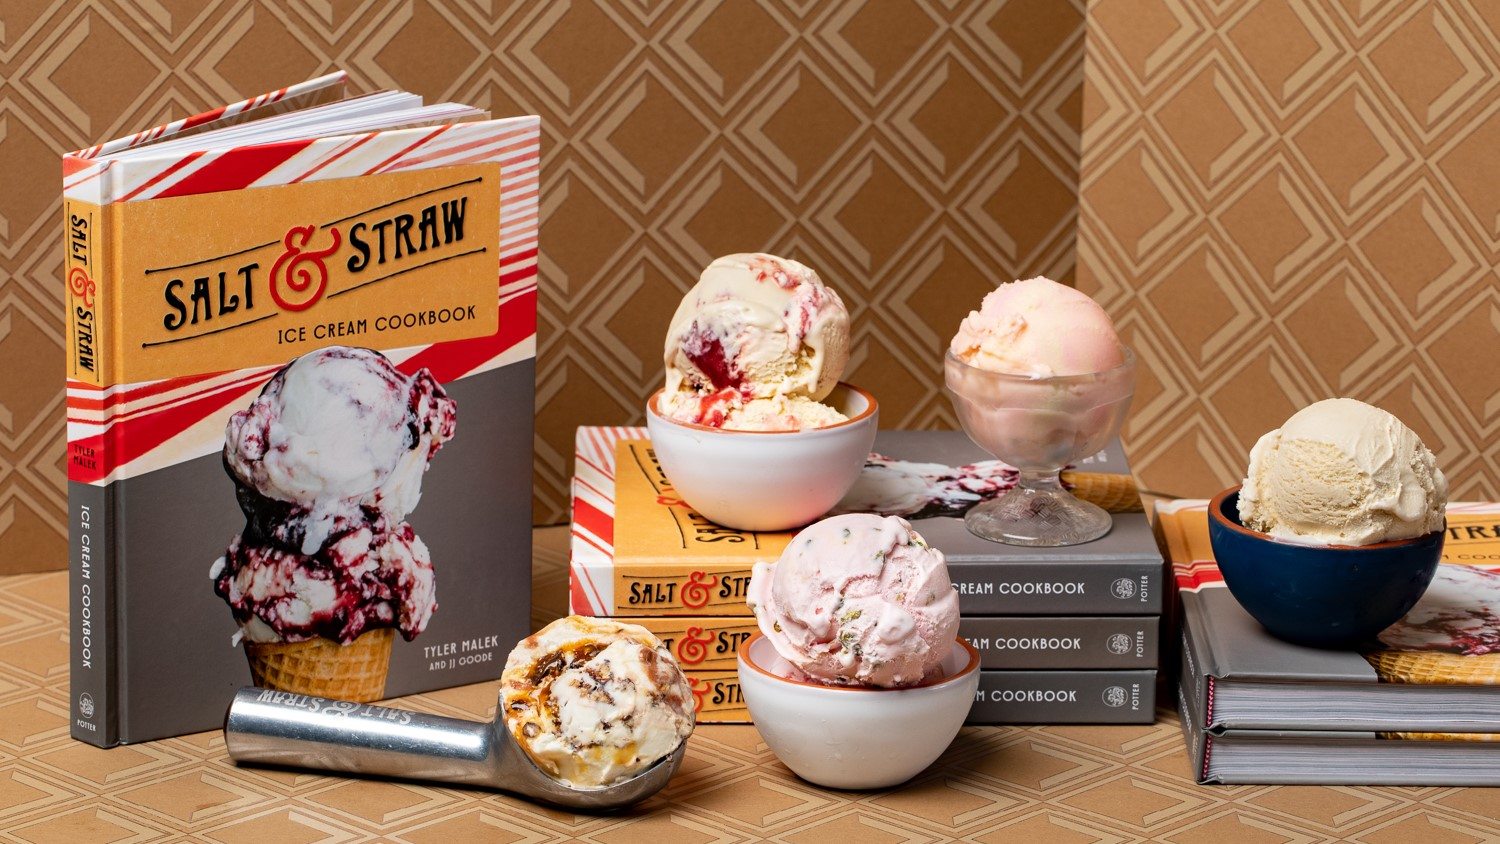 image of Salt & Straw Ice Cream Cookbook courtesy of Salt & Straw